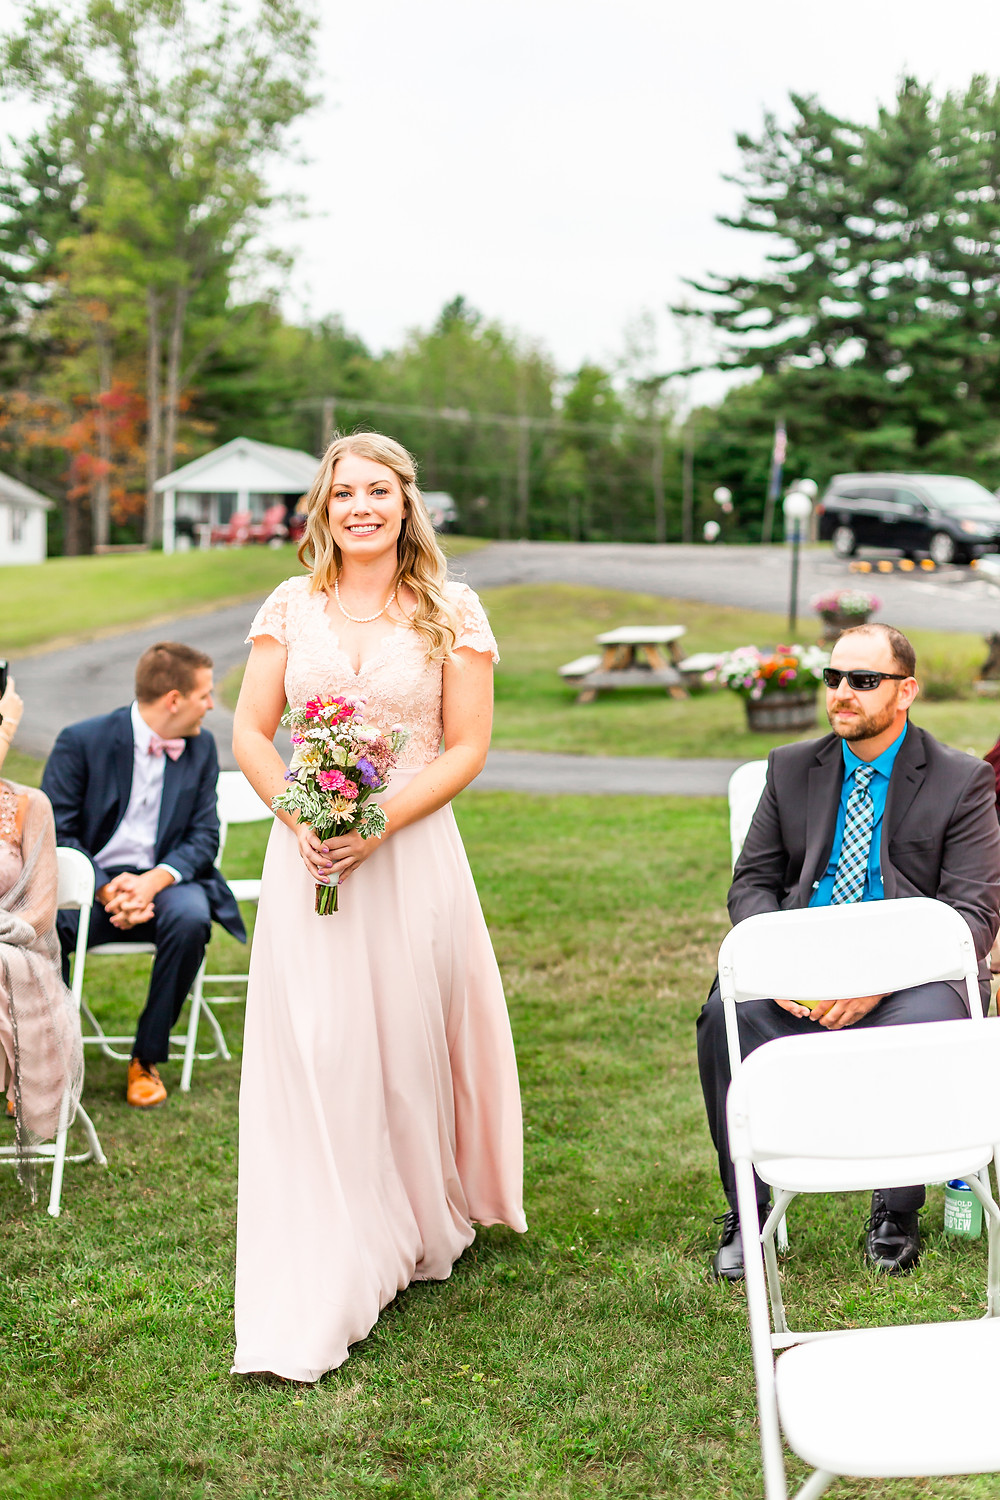 Maid of honor photos taken by wedding photographer in New Hampshire.